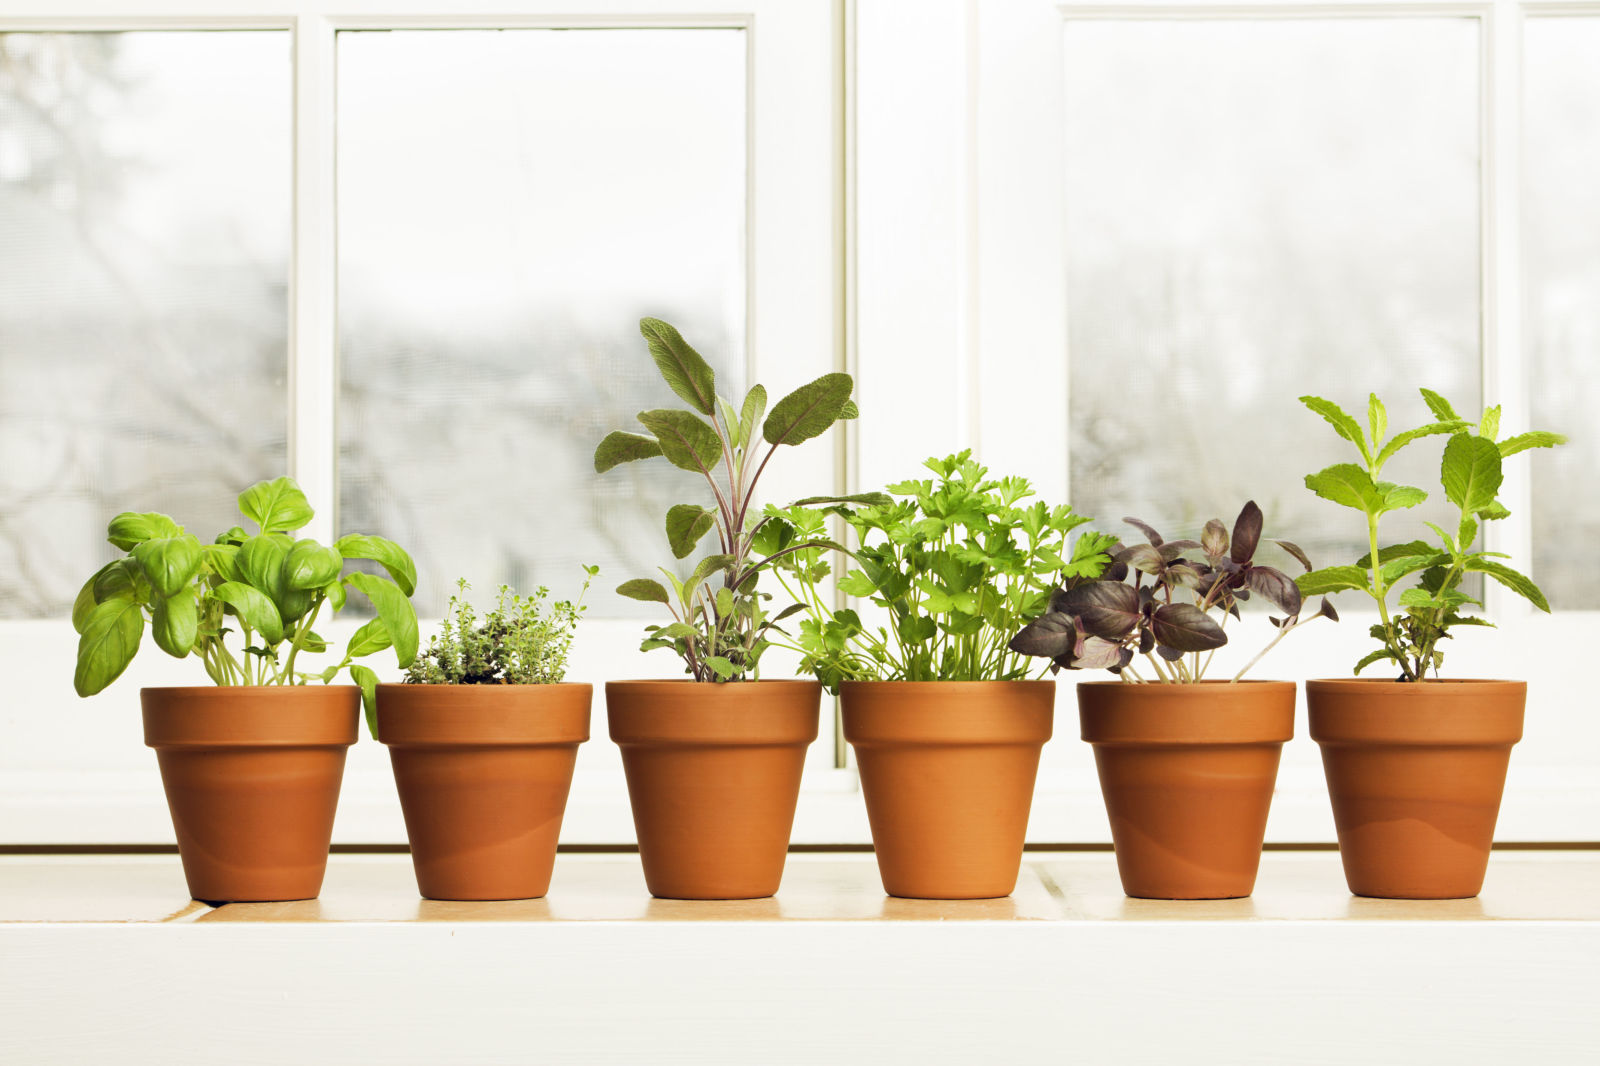 grow herbs and spices indoors